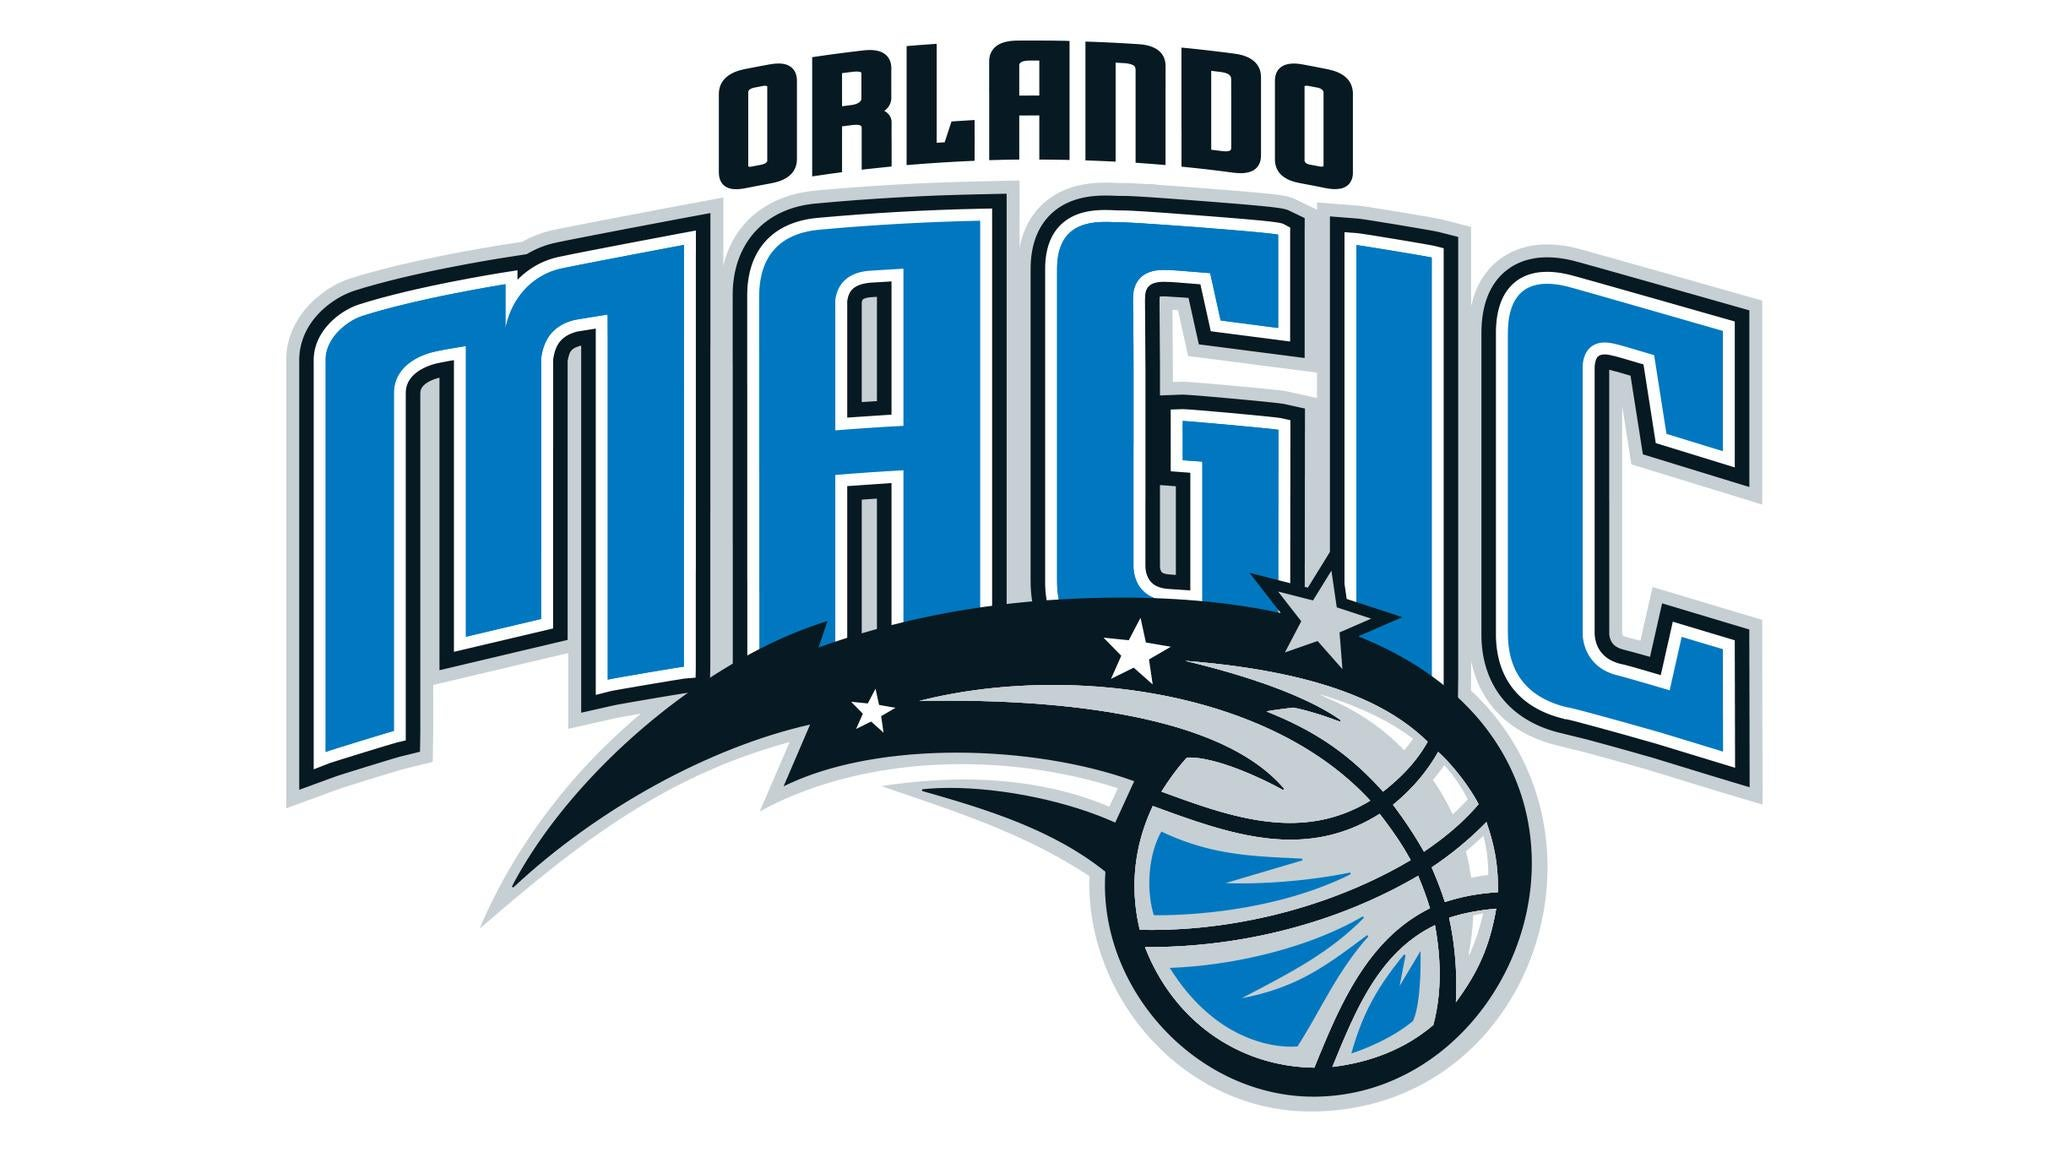 Orlando Magic vs. Golden State Warriors at Amway Center